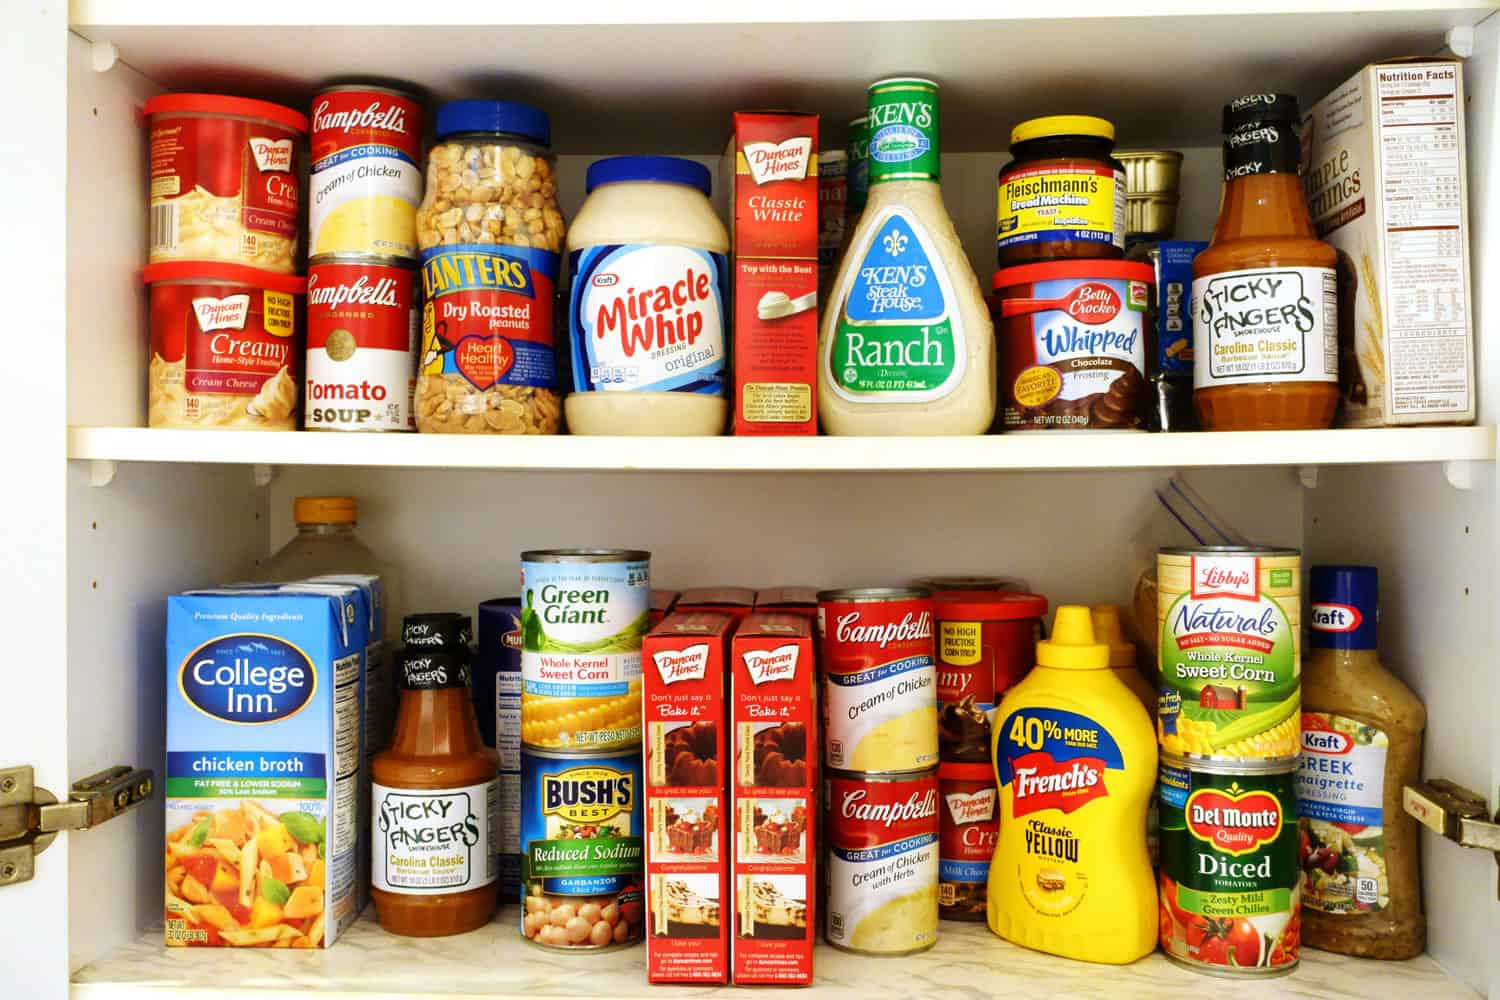 Pantry shelves filled with groceries